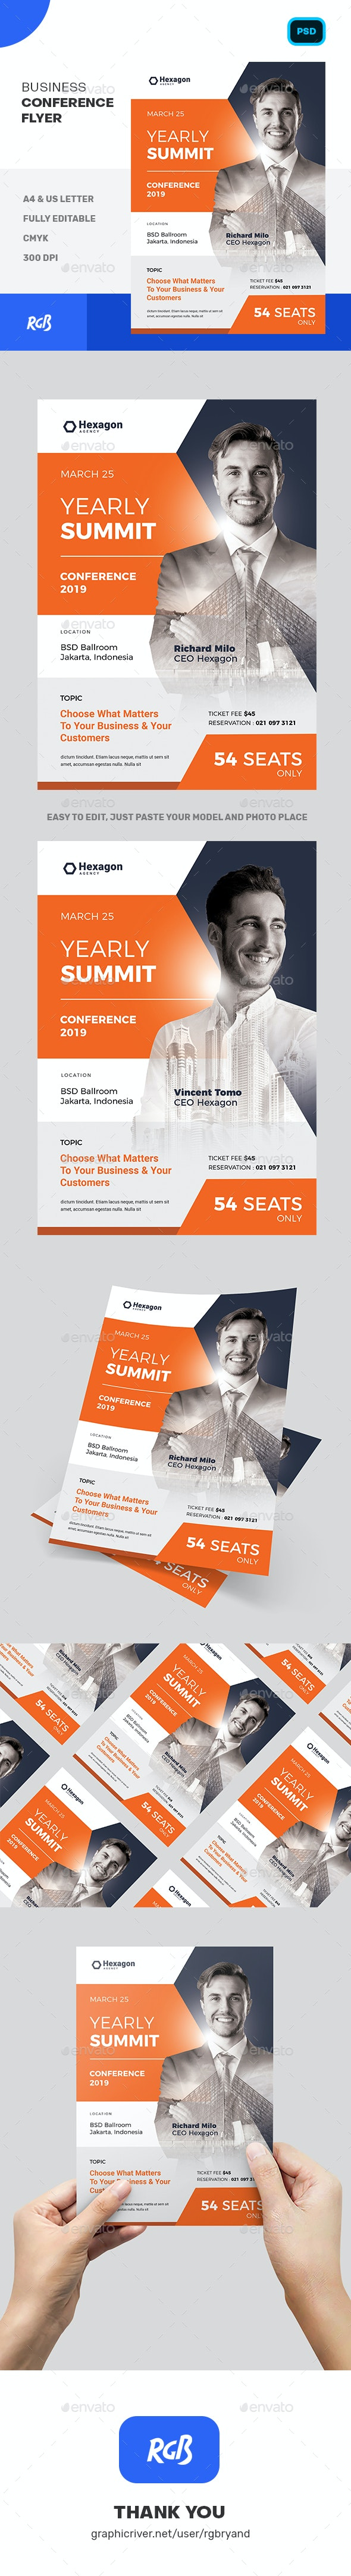 Business Conference Flyer Template - Corporate Flyers